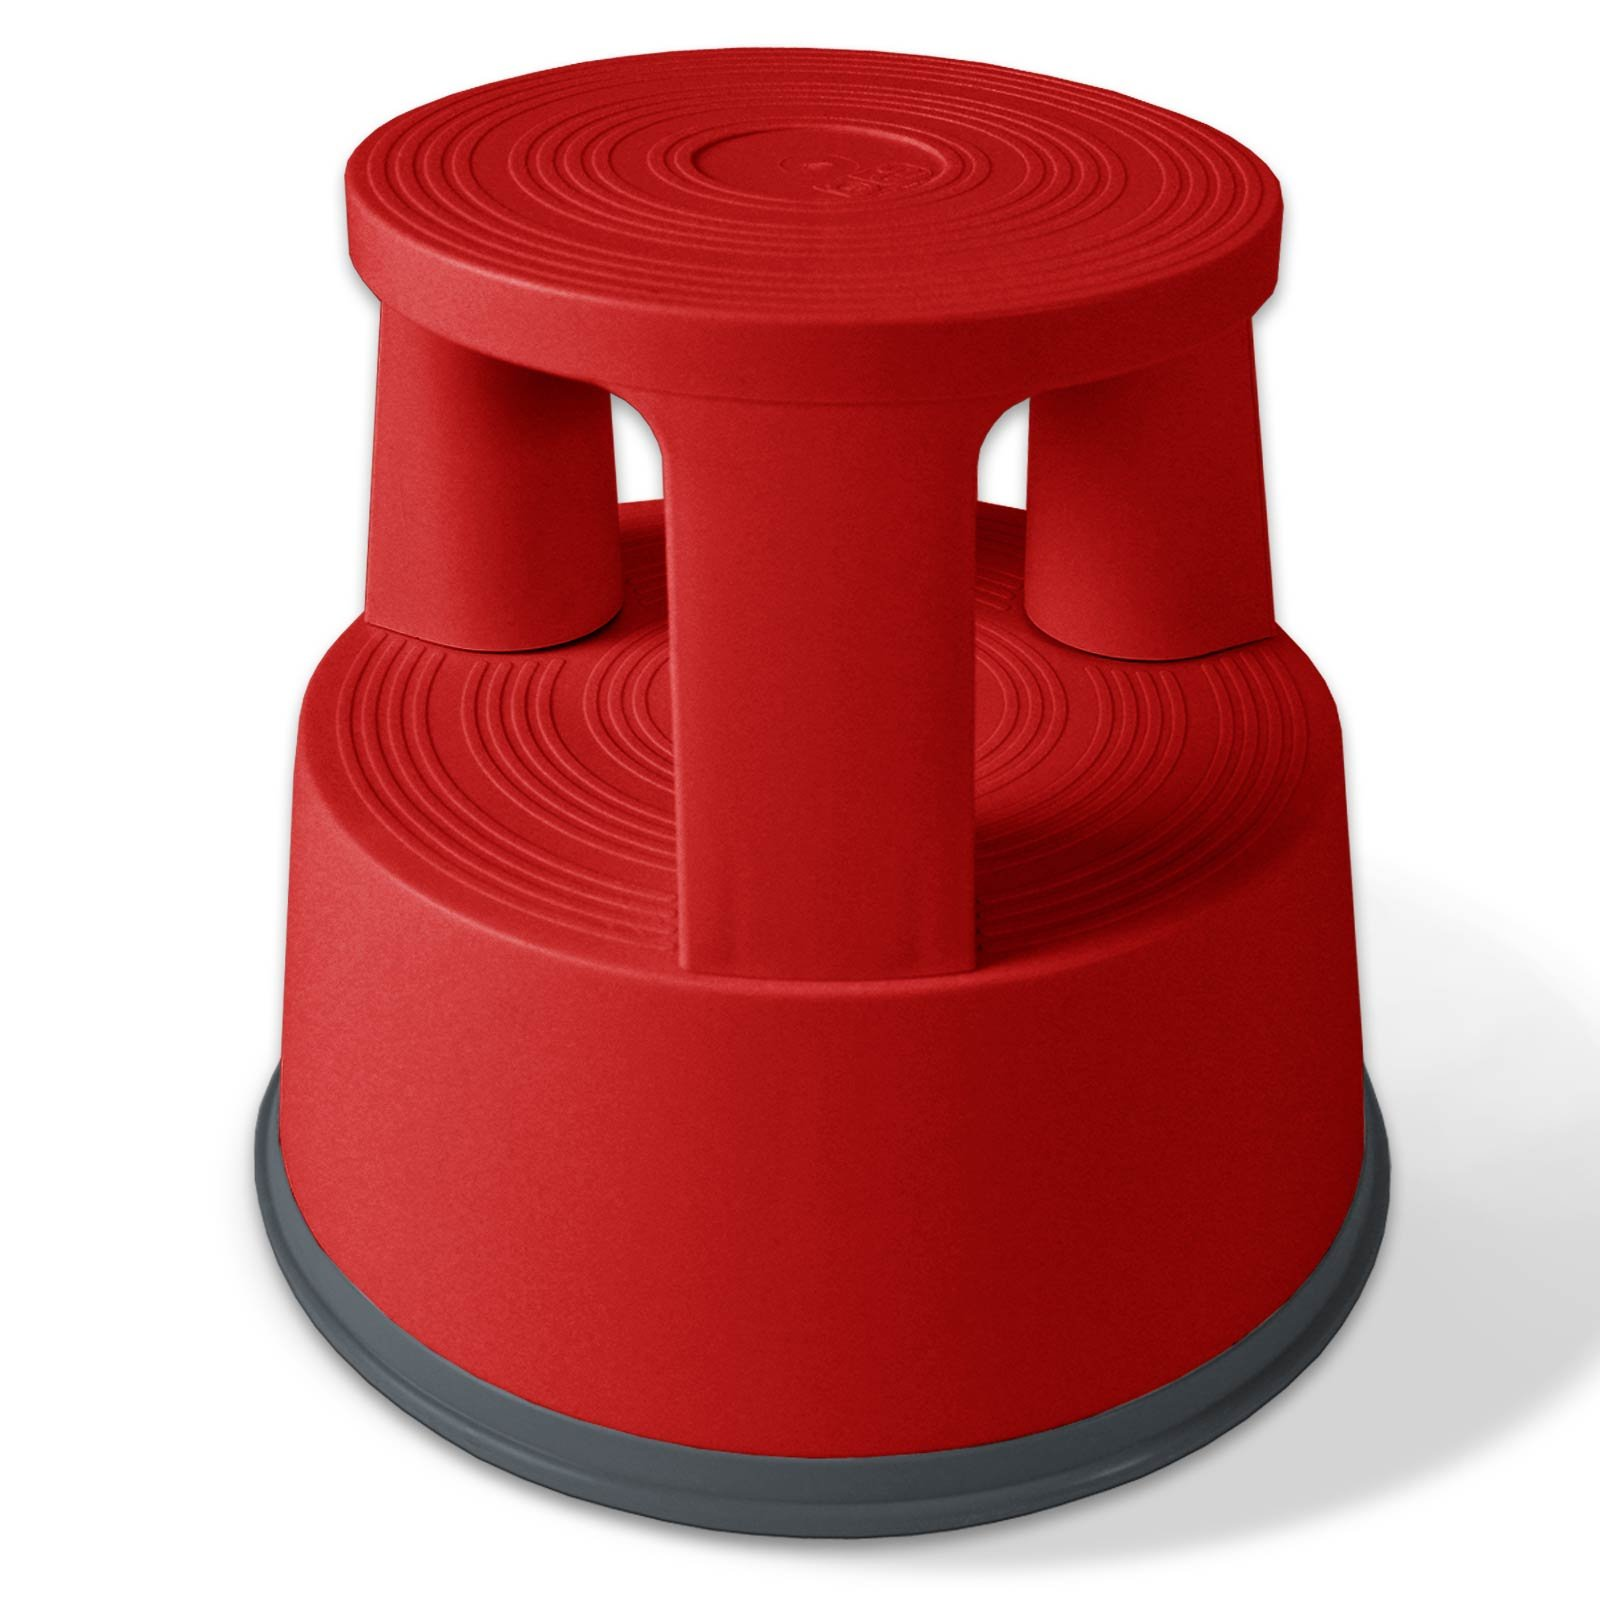 casa pura Red Kick Stool   Rolling Step Stool with Spring Loaded Wheels   Dent-Proof Polypropylene   330 LB Load Capacity